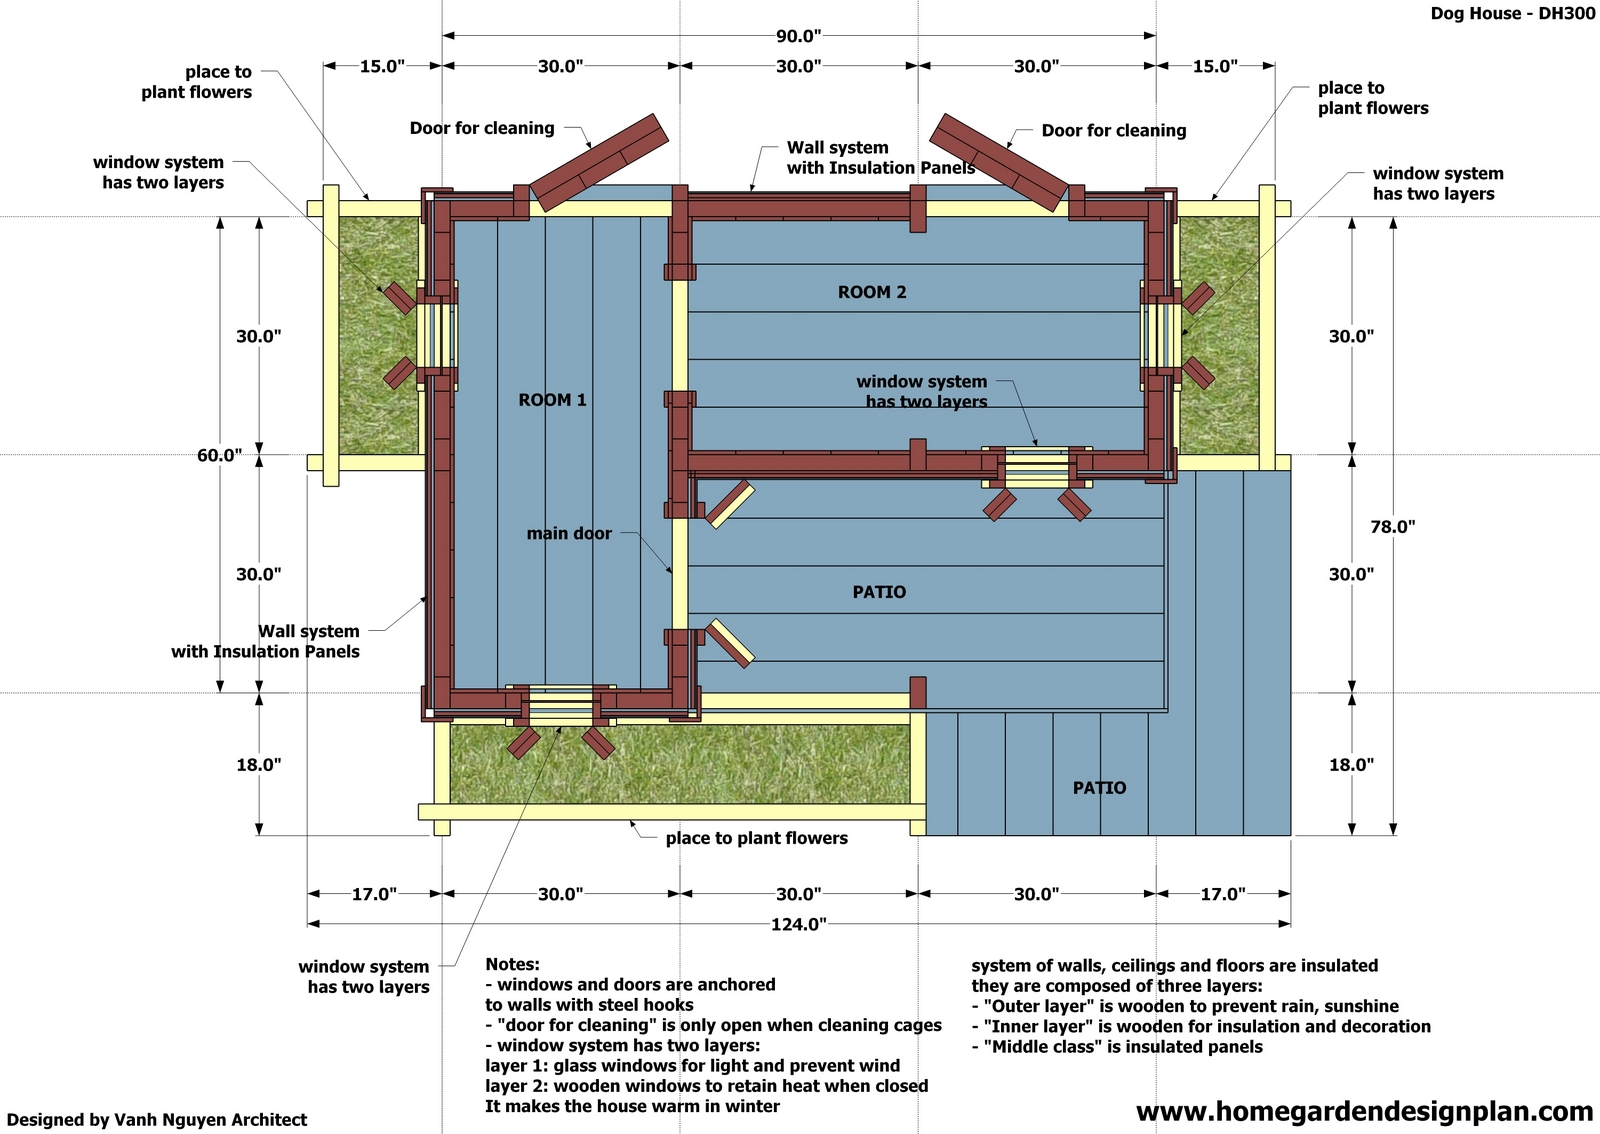 Free easy large dog house plans Free house plans